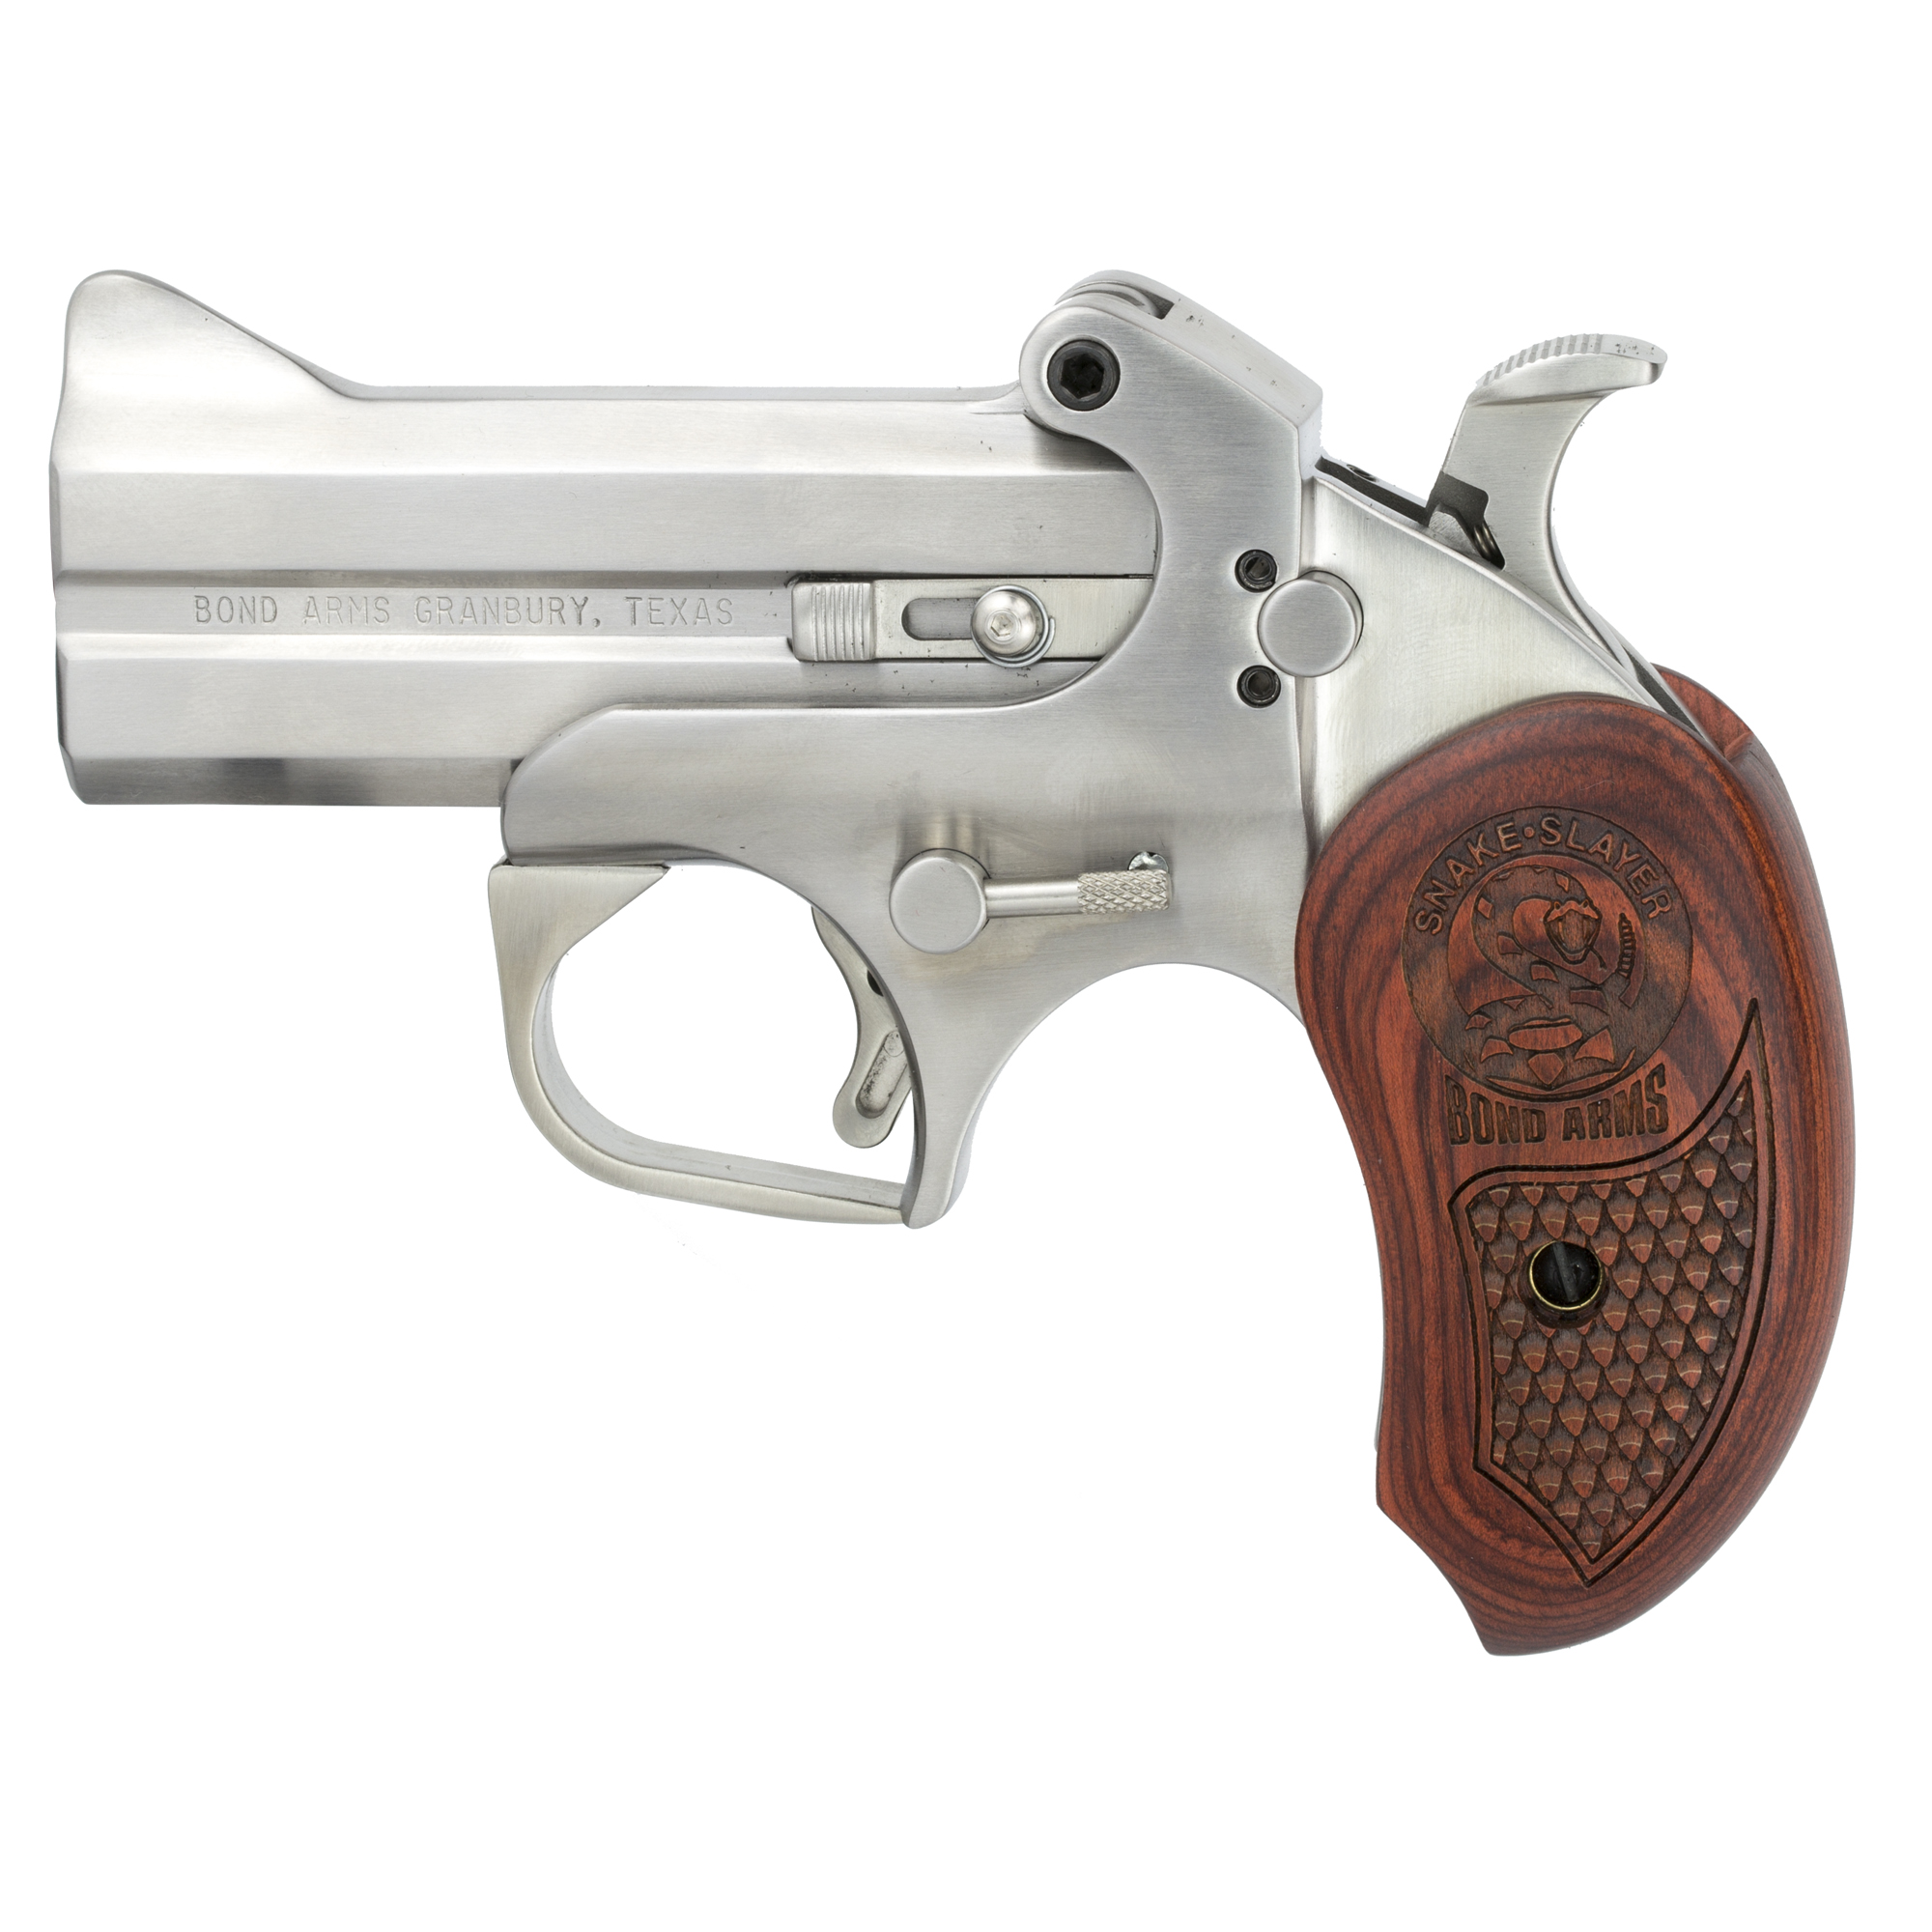 """Bond Arms Derringers come standard with a rebounding and locking hammer"""" which is a first for derringers. The hammer automatically jumps back and locks into a half-cocked position for safety. A Simple Barrel-locking mechanism that is spring loaded allows easy opening and closing of the barrels for quick reloading and cleaning."""